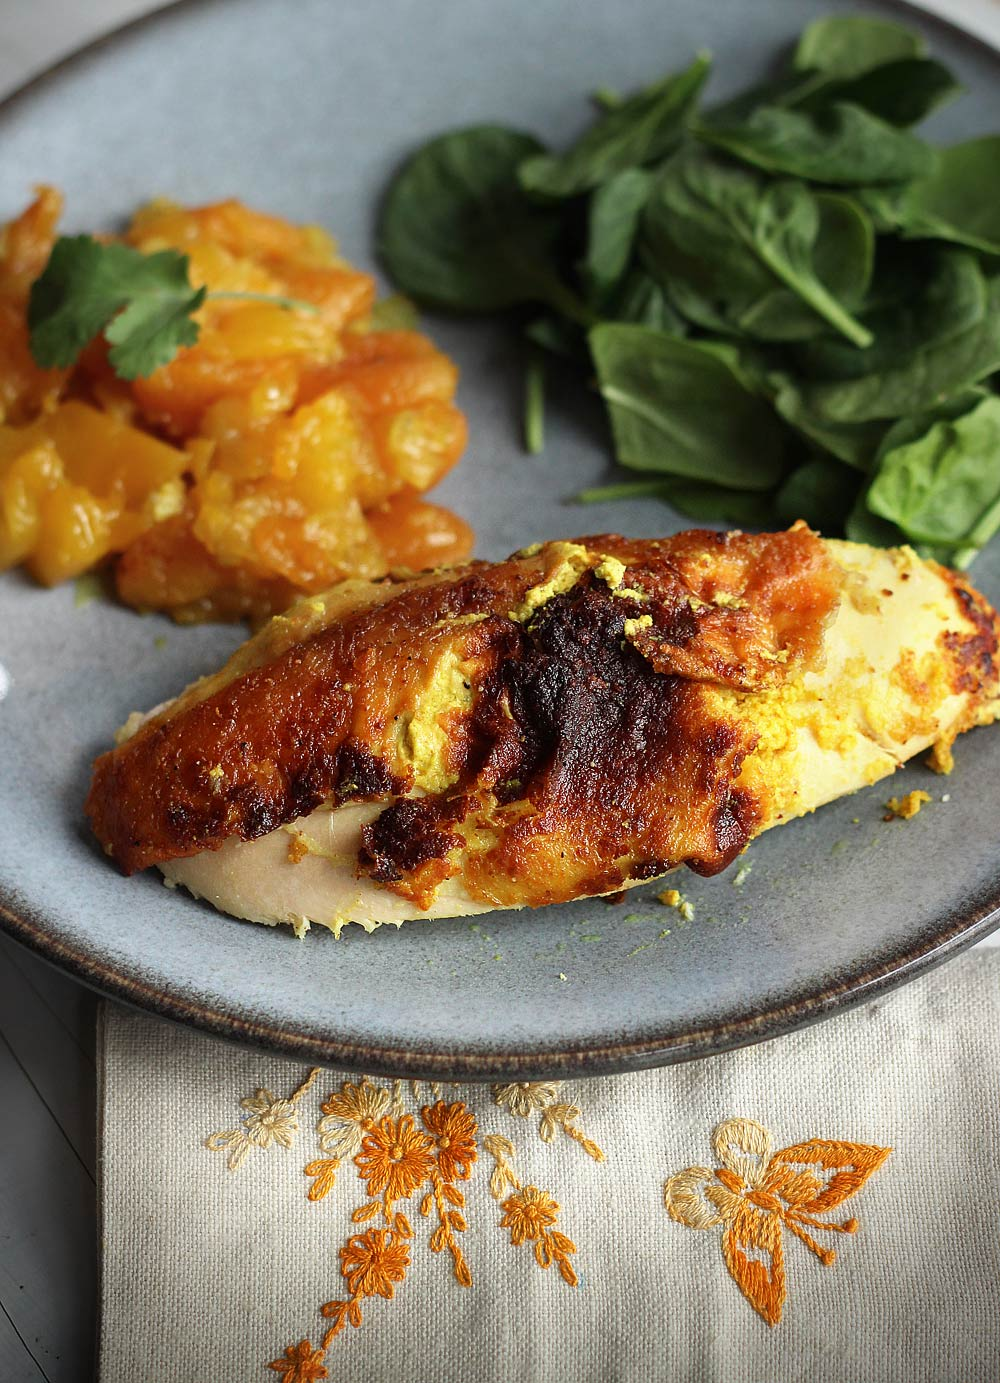 Roast Chicken stuffed with Indian-Spiced Goat Cheese